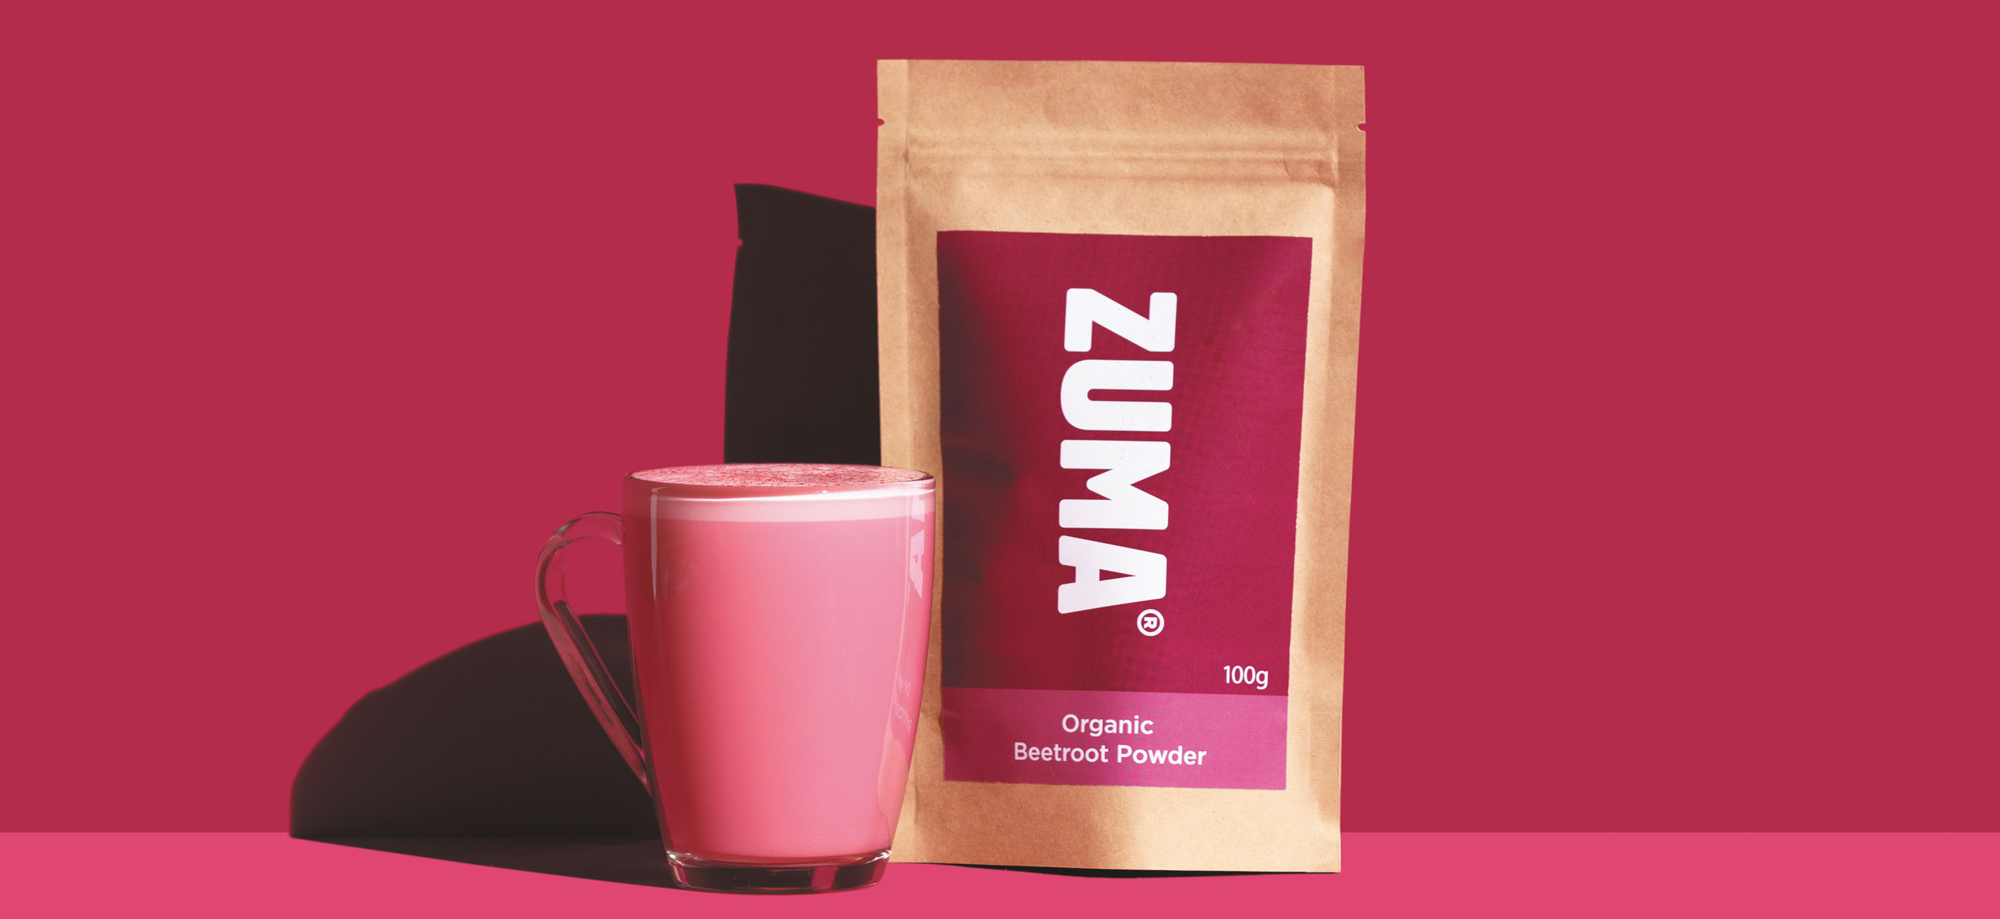 INTRODUCING ZUMA ORGANIC BEETROOT POWDER